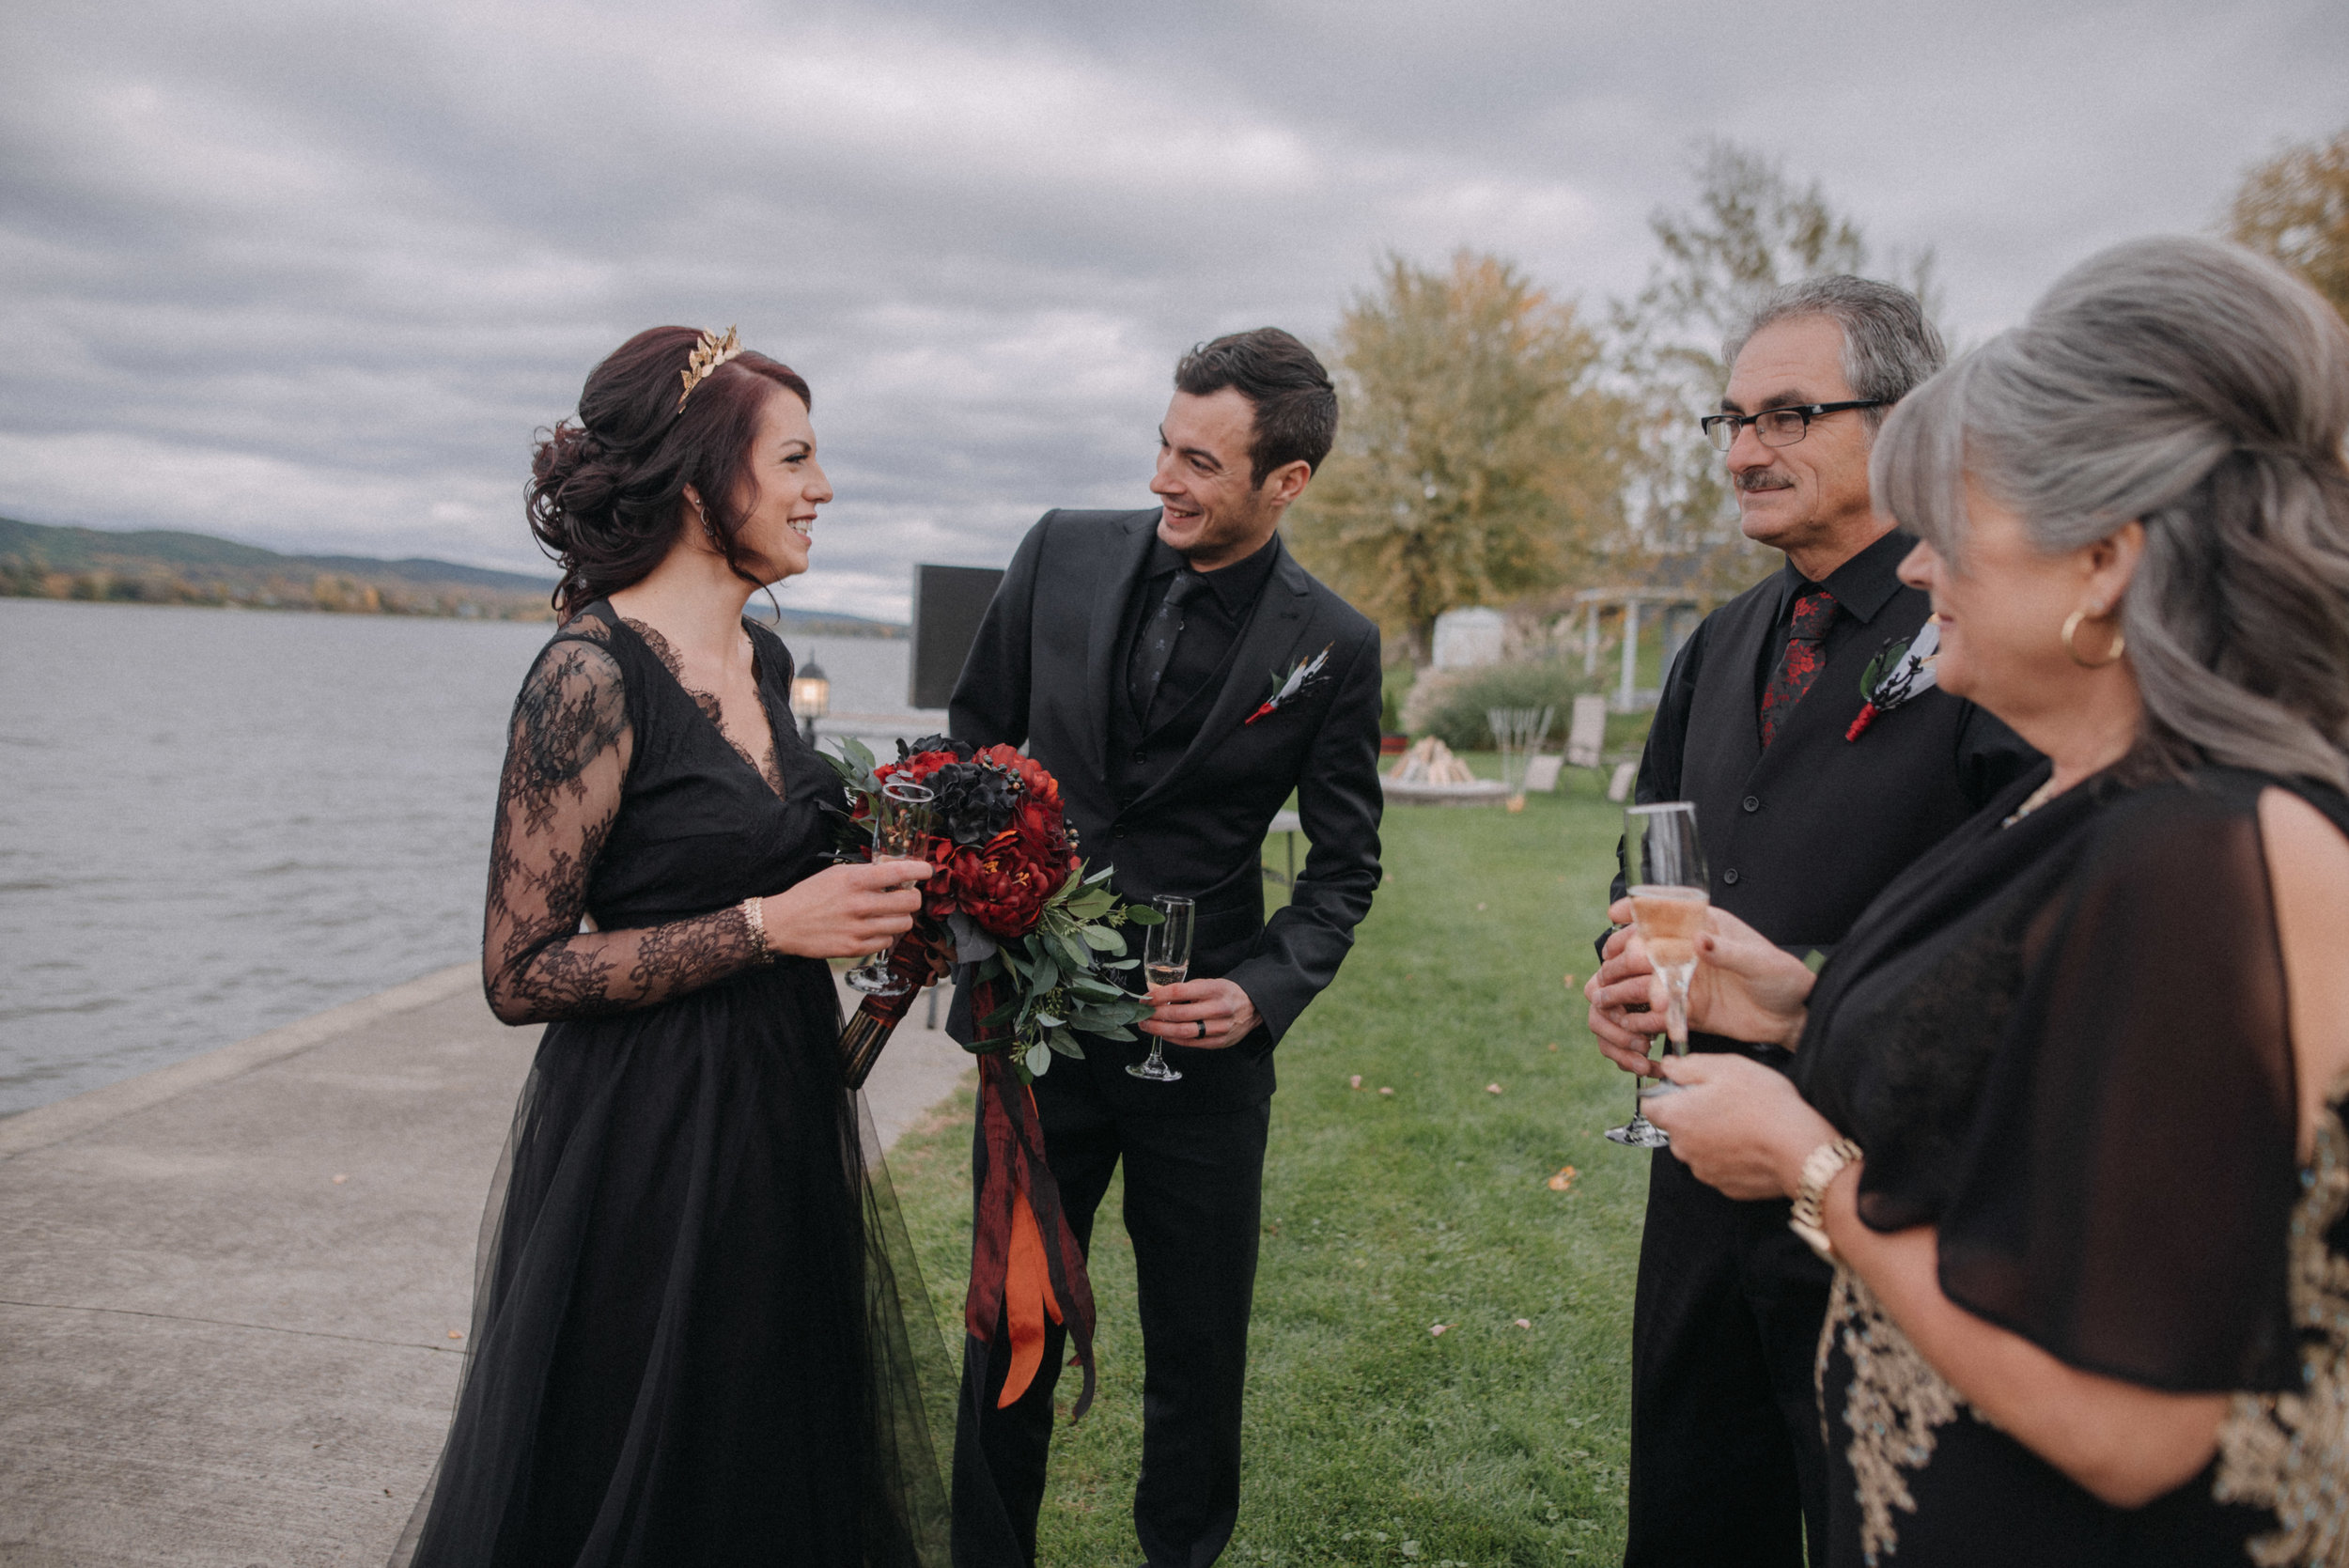 photographe_gatineau_mariage_ottawa_photographer_wedding_natasha_liard_photo_documentary_candid_lifestyle_intimate_intime (13).jpg